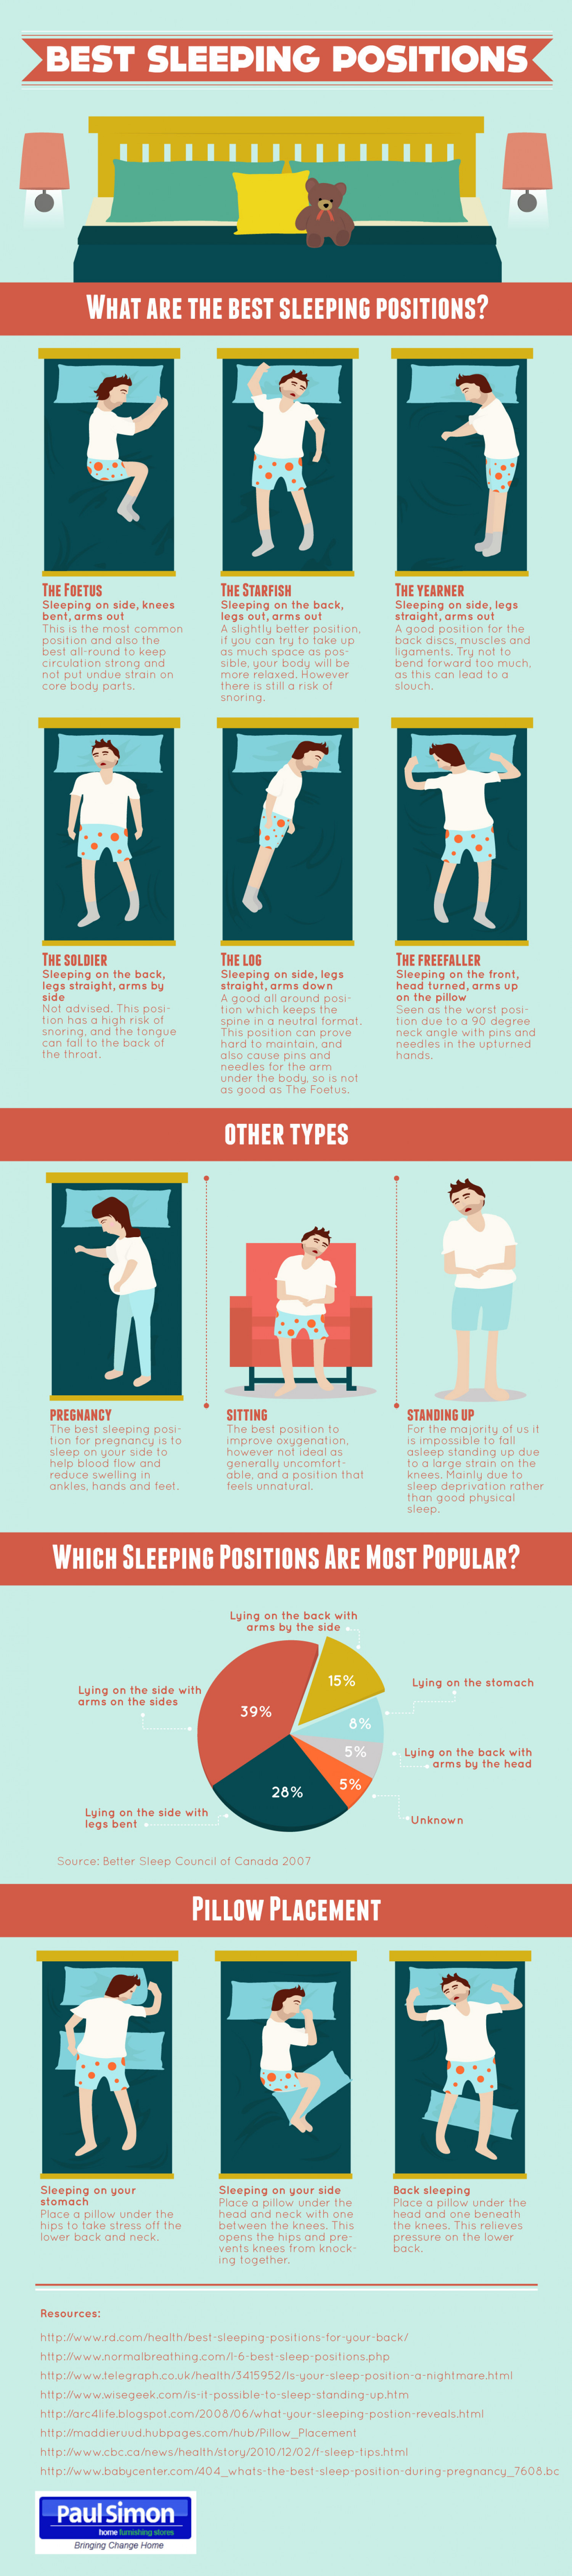 Best Sleeping Positions Infographic